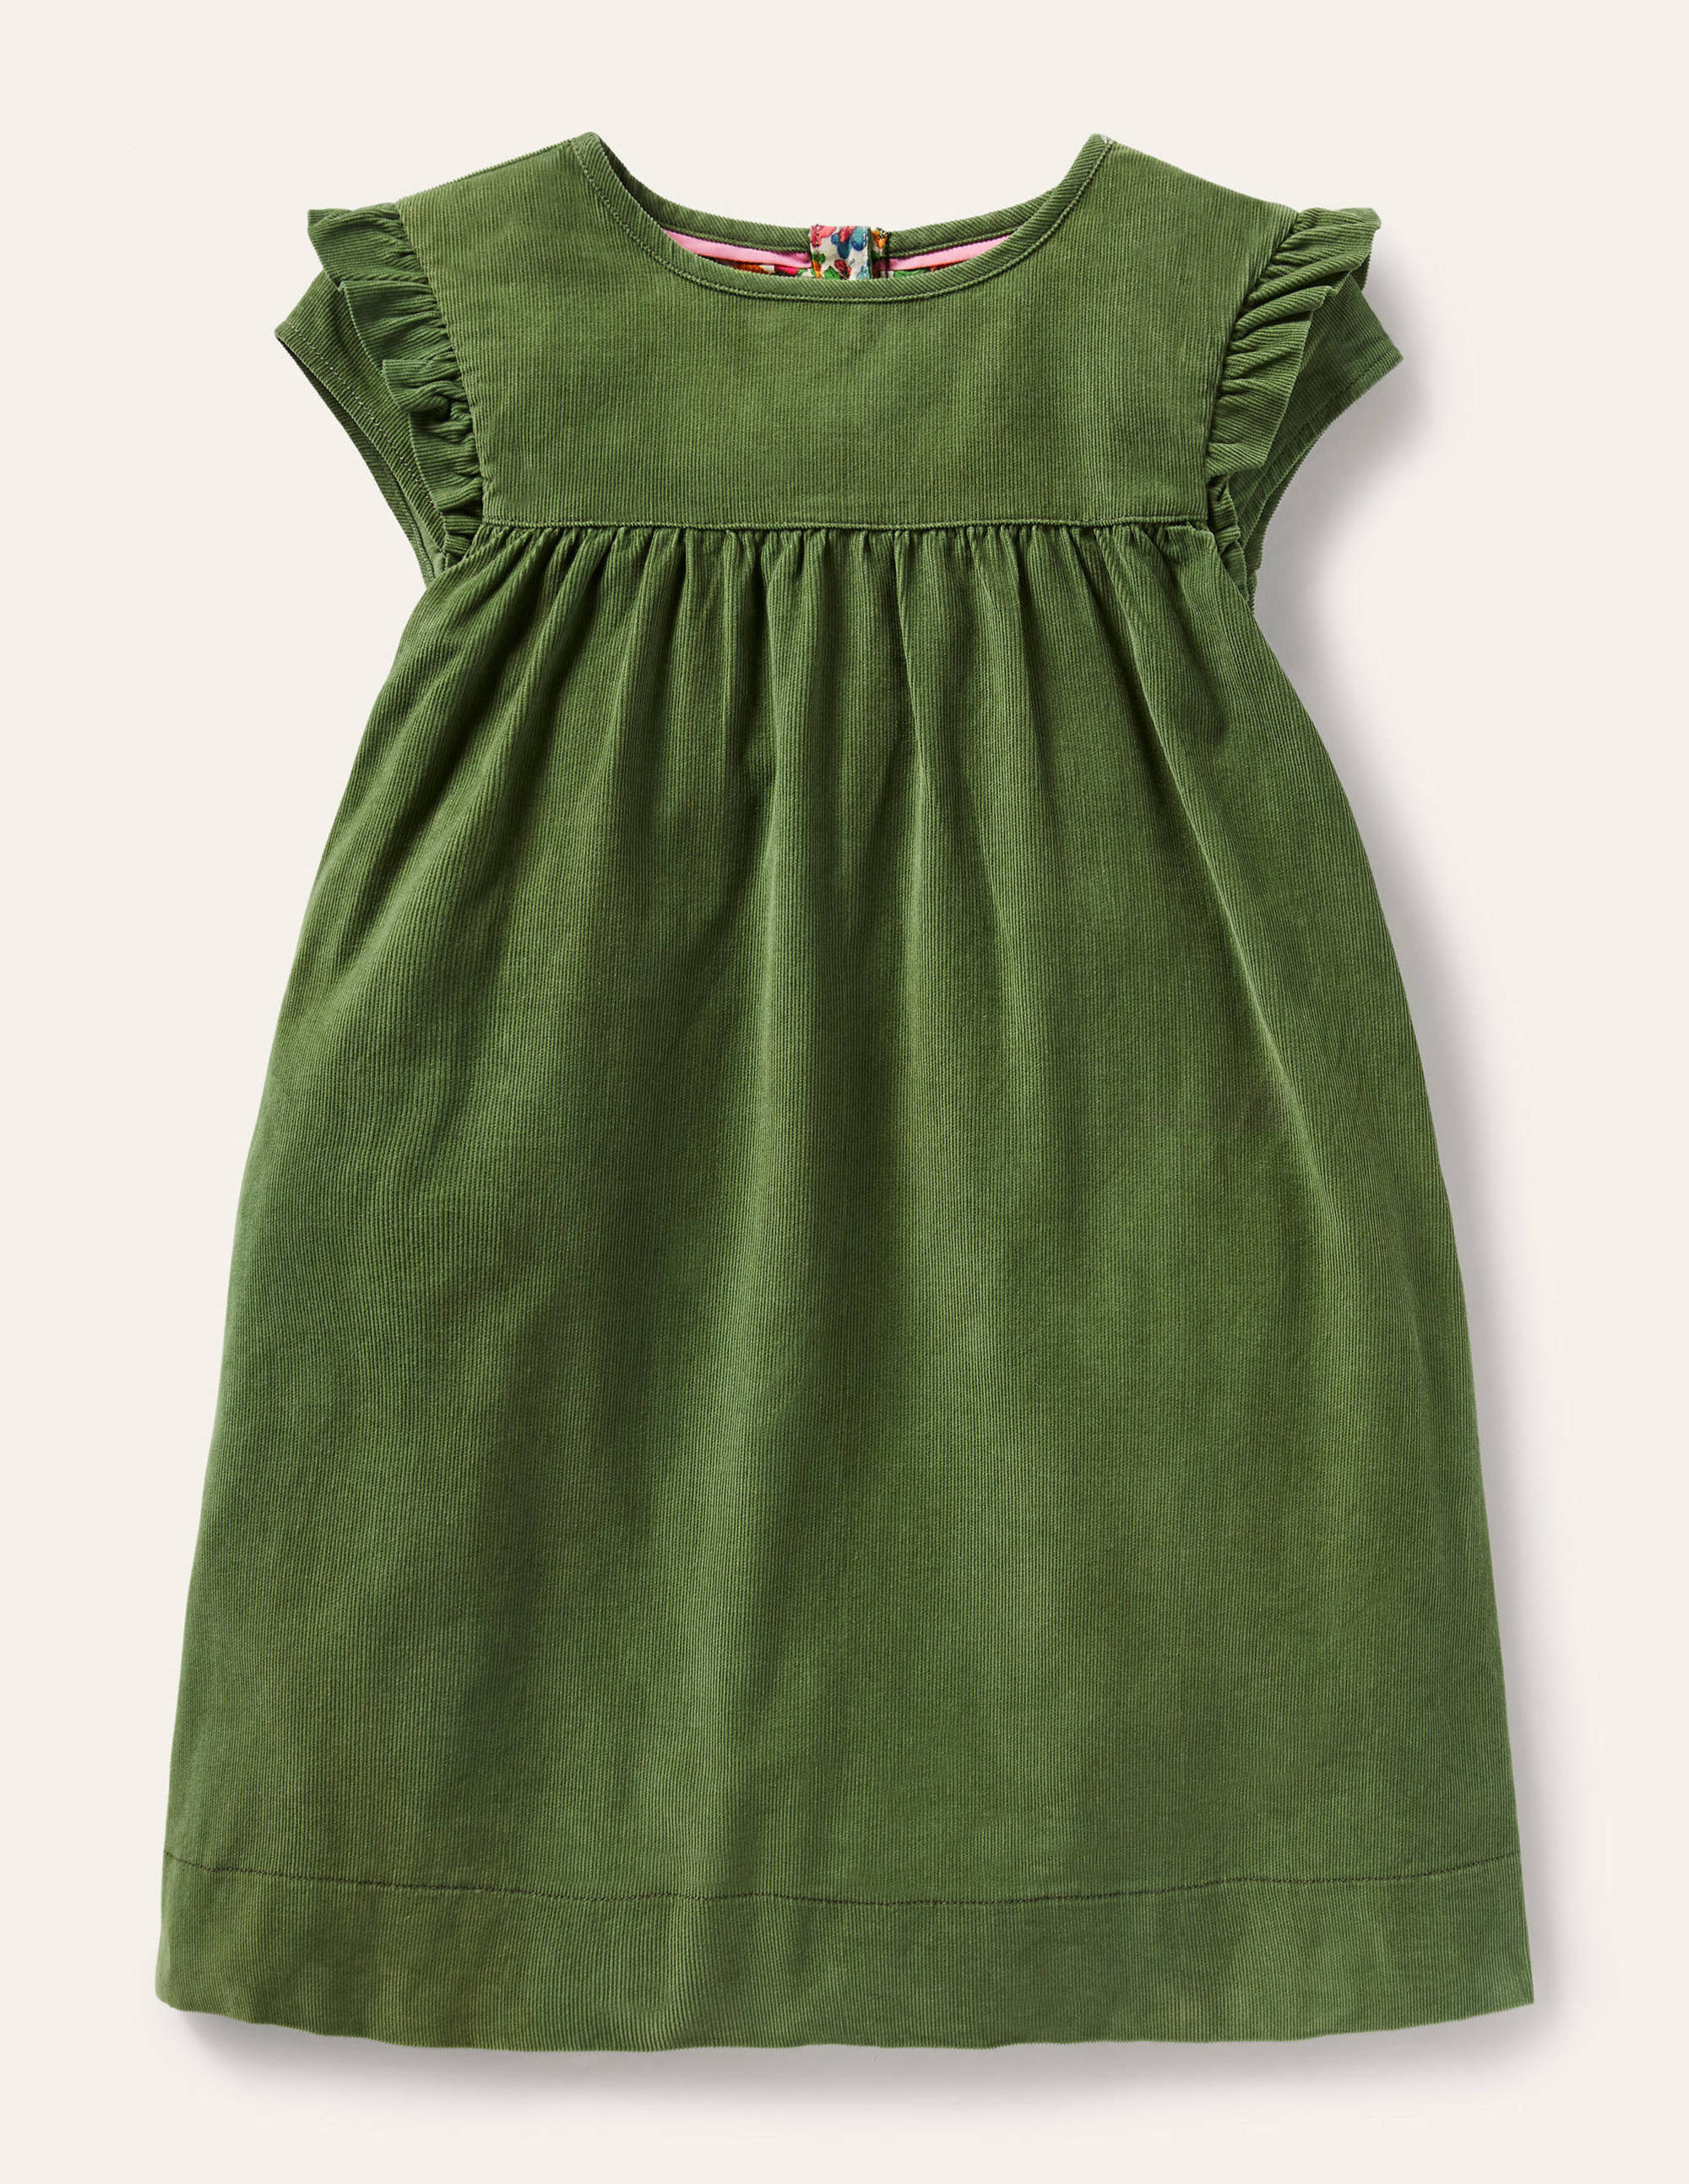 Boden Easy Everyday Dress - Willow Green